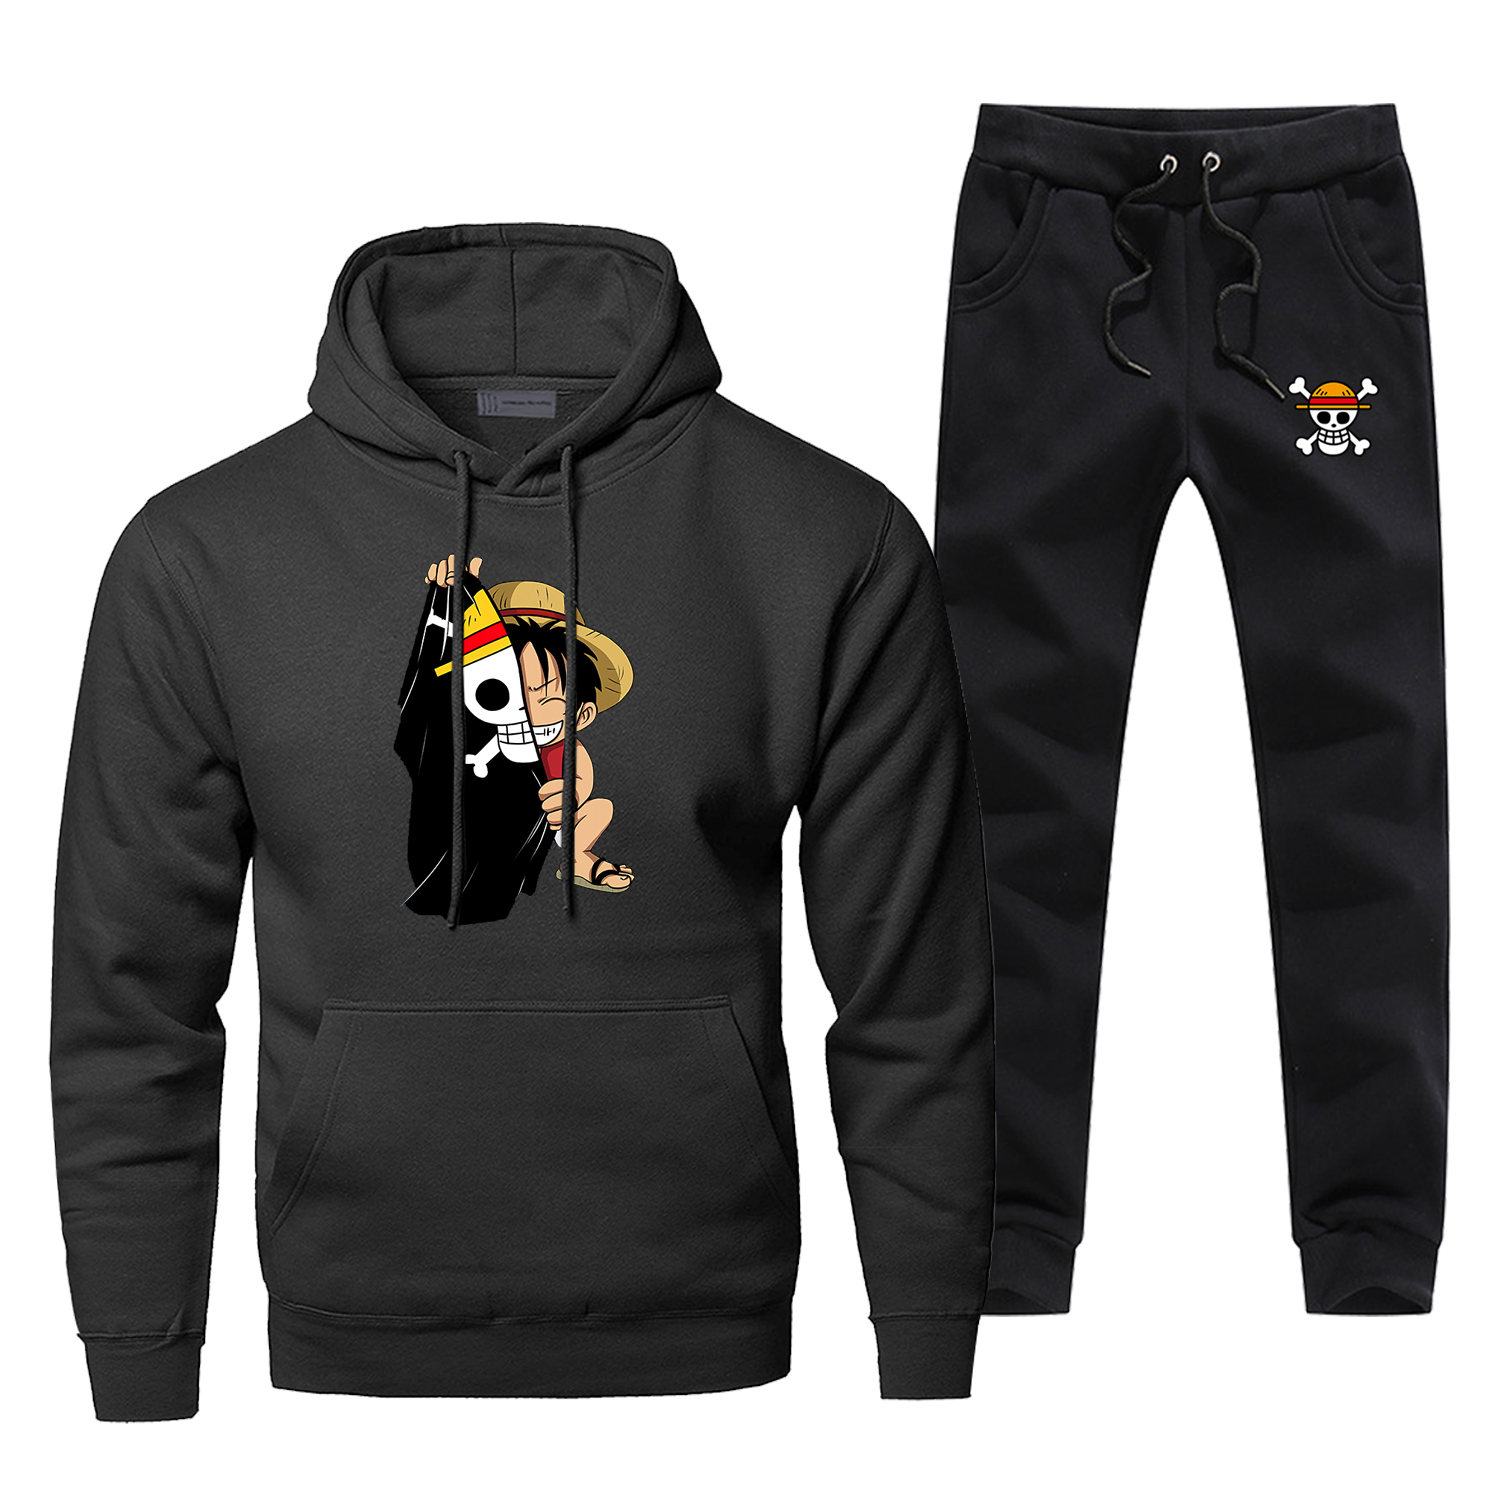 One Piece Men Hoodie Male Pants Set Skull Luffy Sweatshirt Mens Hoodies Sweatshirts Sets Two Piece Pant Japanese Anime 2Pcs Coat